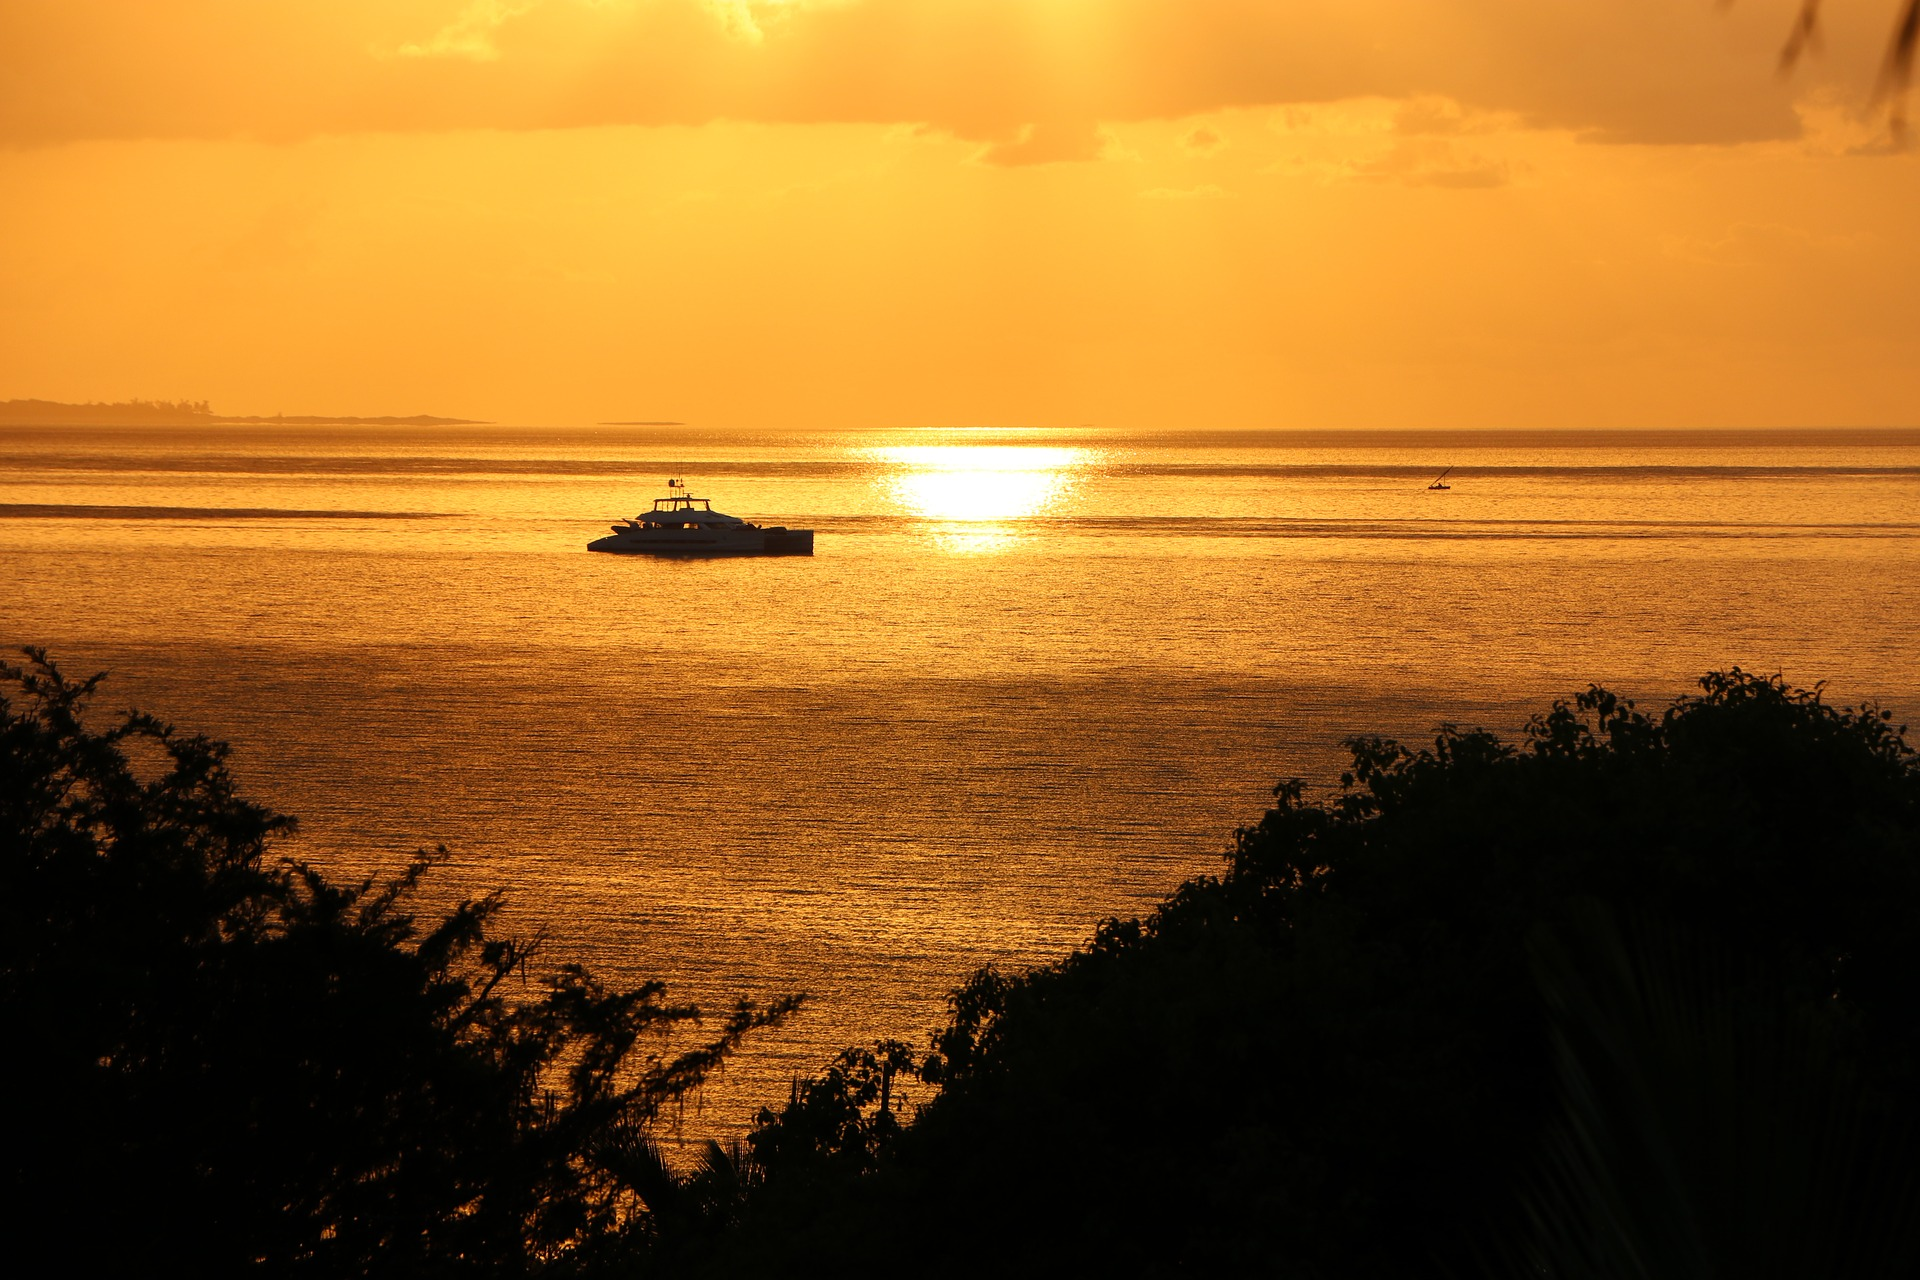 mozambique-sunrise-1742495_1920